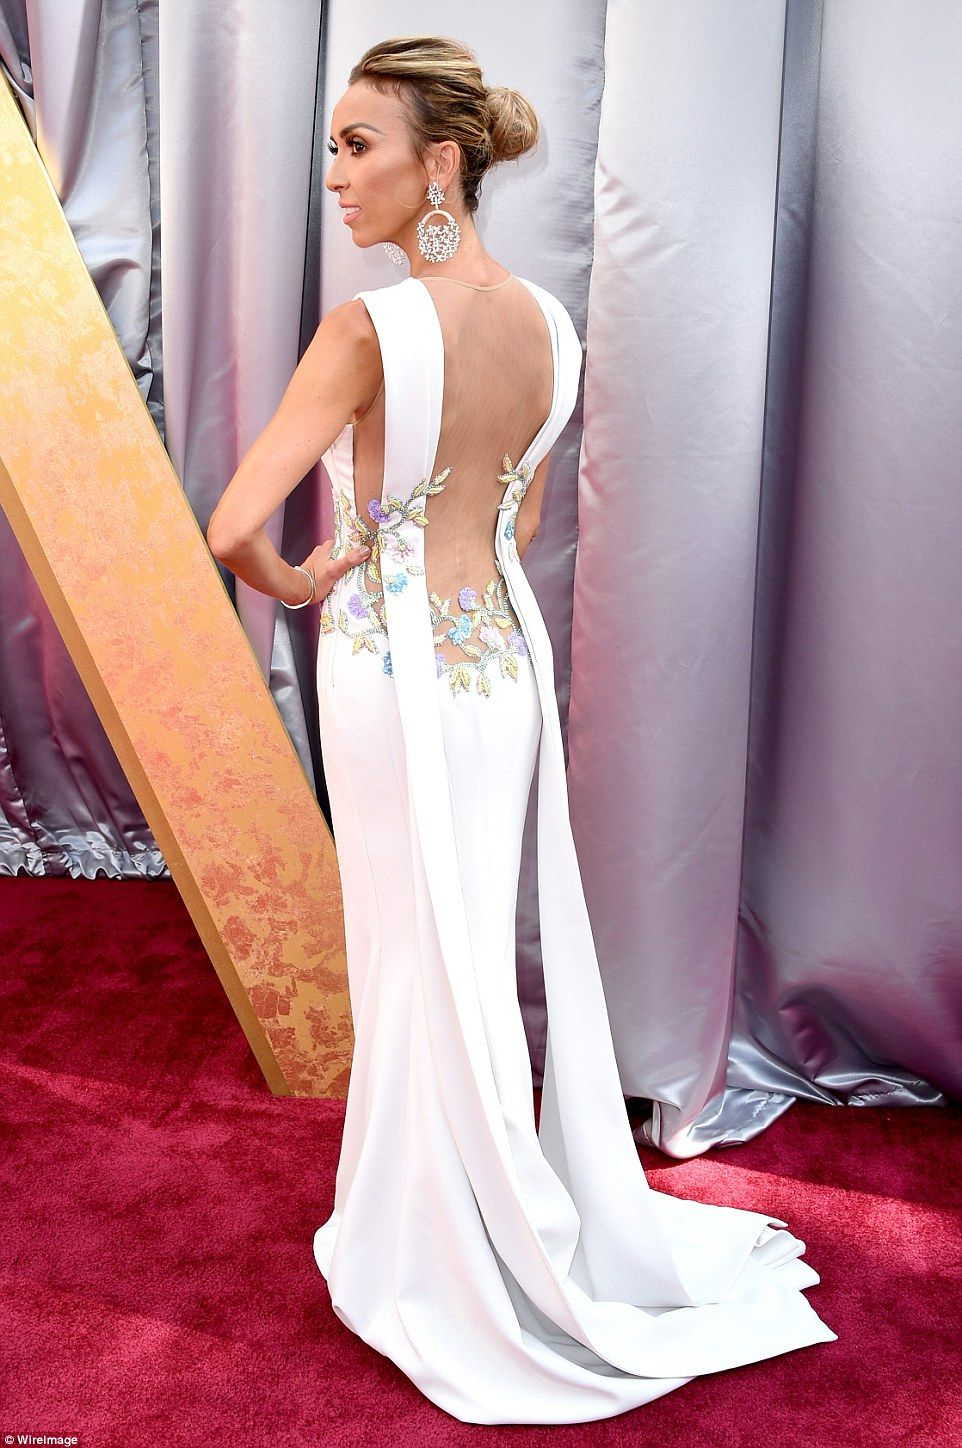 Jennifer lawrence brie larson and cate blanchett wow at oscars